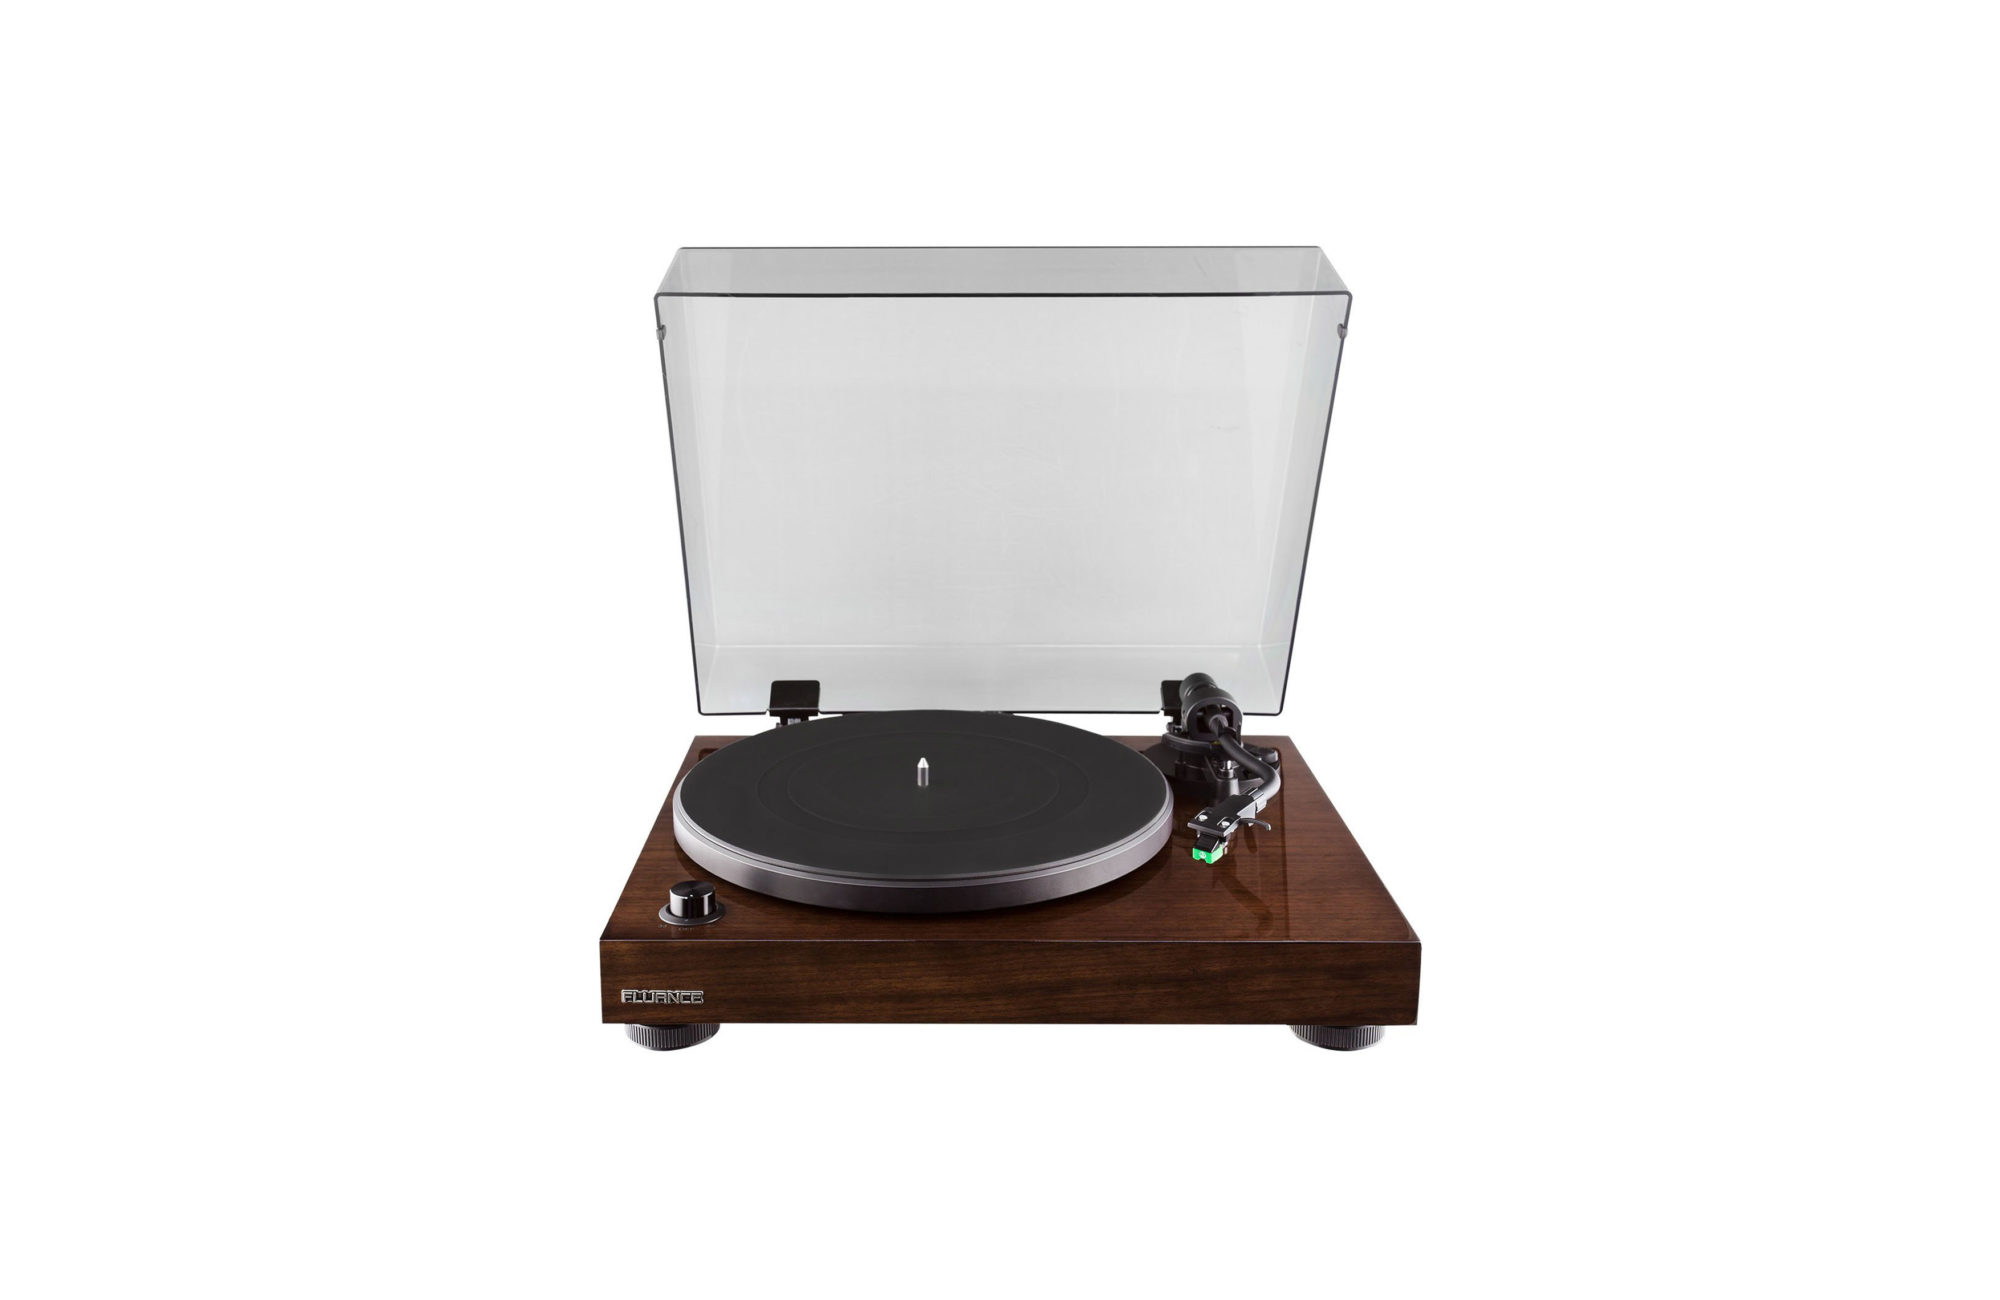 Fluance RT81 High Fidelity Turntable RECORD PLAYER